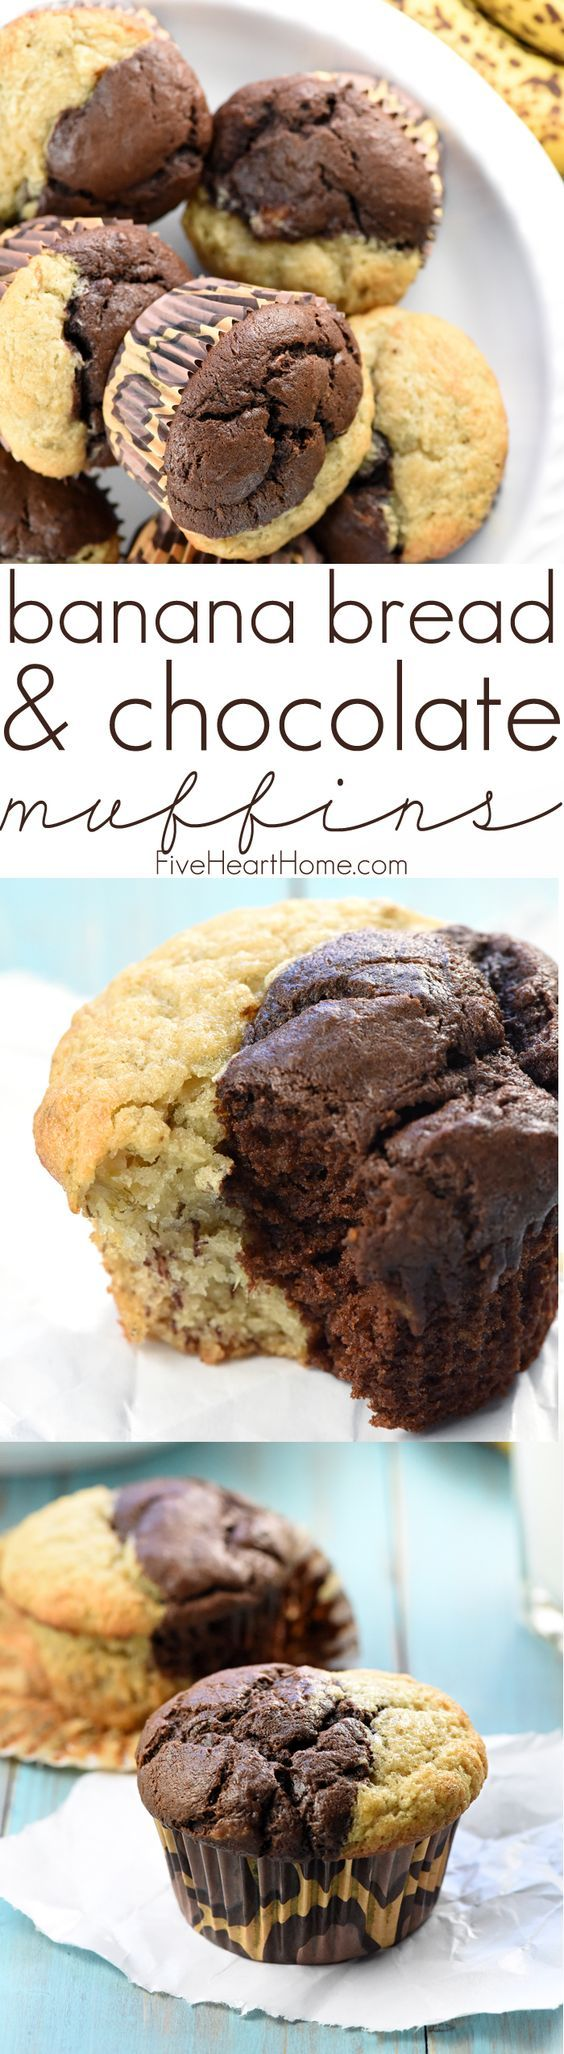 Banana Bread & Chocolate Muffins ~ these sweet, moist, bakery-style muffins combine half plain banana batter and half chocolate banana batter for a perfect breakfast or snack! | FiveHeartHome.com: